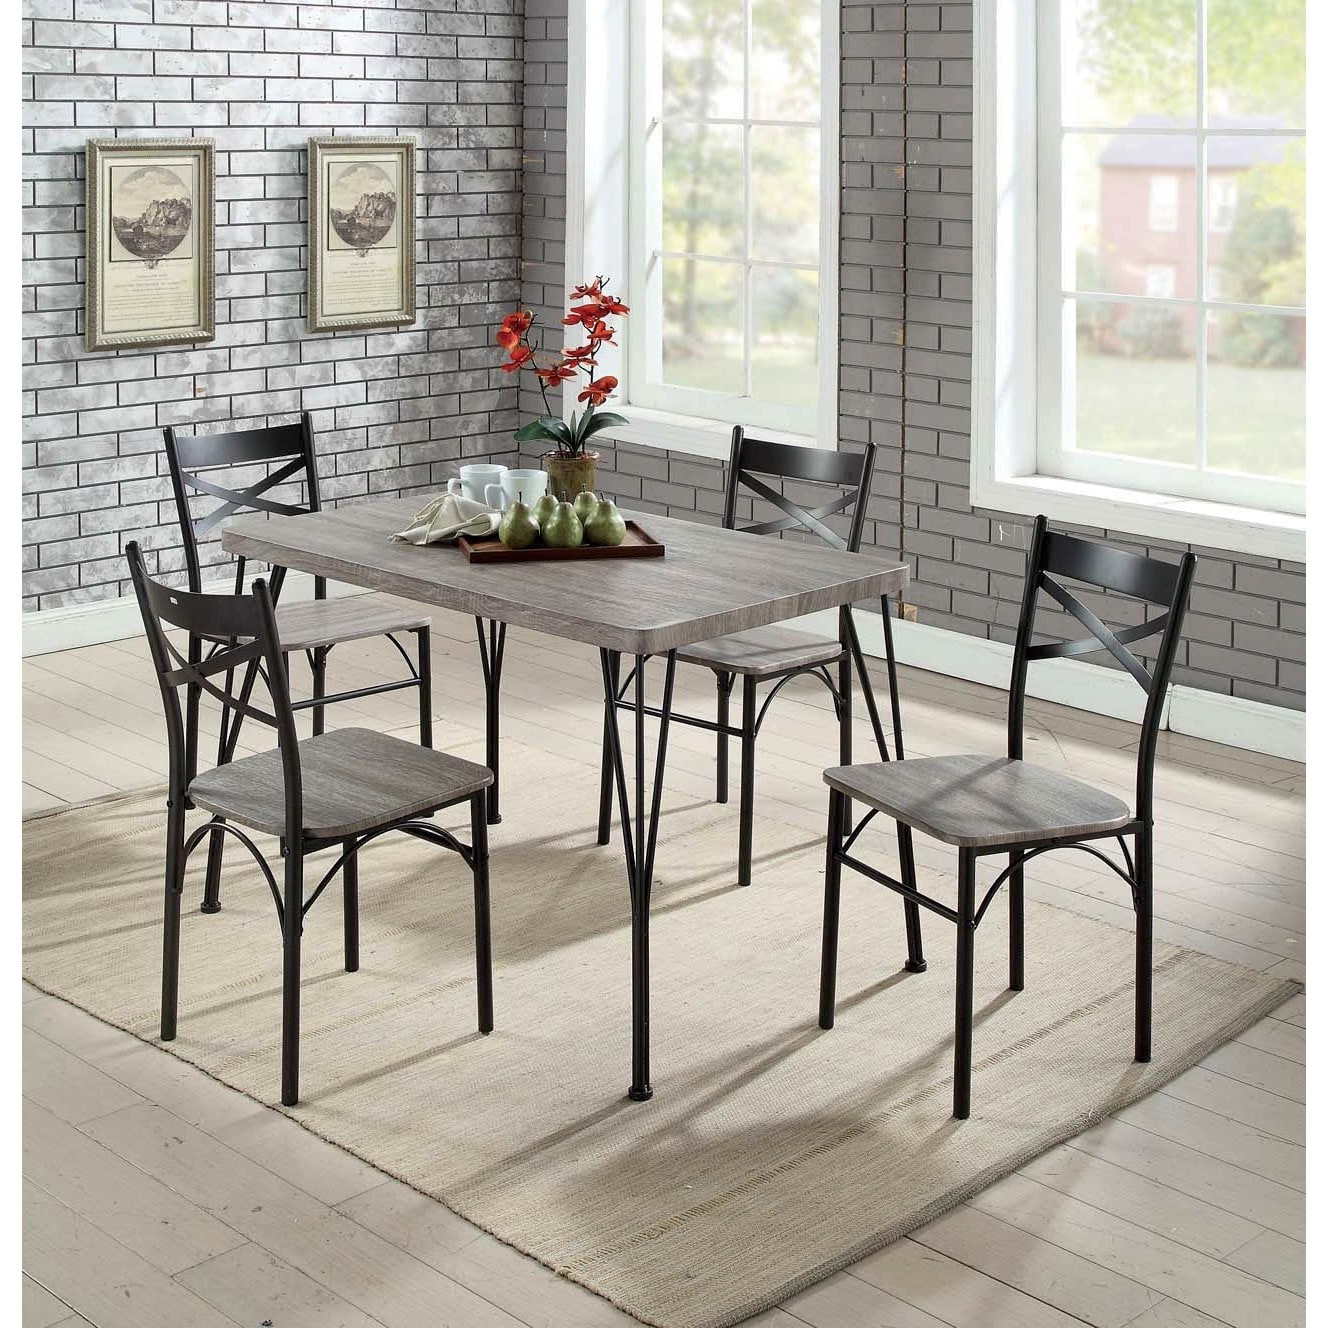 Furniture Of America Hathway Industrial 5 Piece Dark Bronze Small Within Latest Bearden 3 Piece Dining Sets (Gallery 12 of 20)